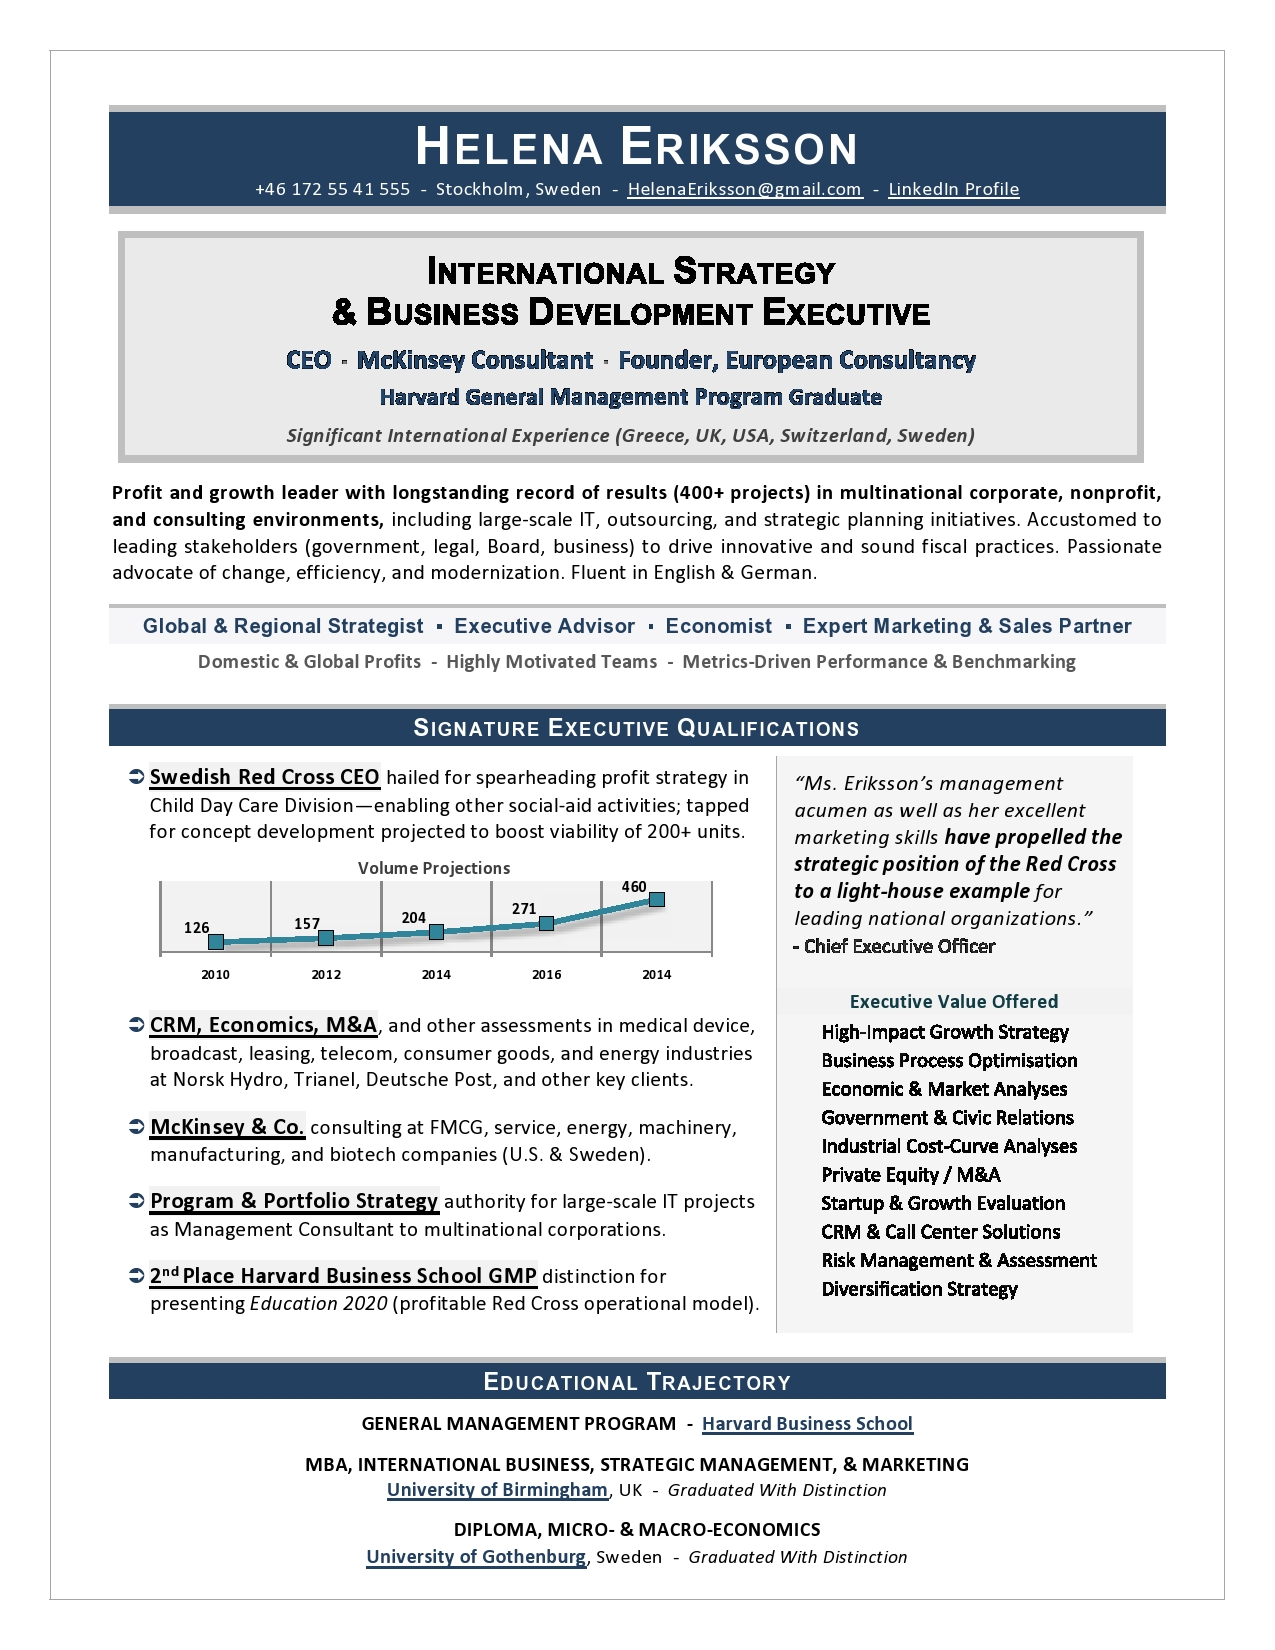 Executive Resume Samples From Top US Award Winning